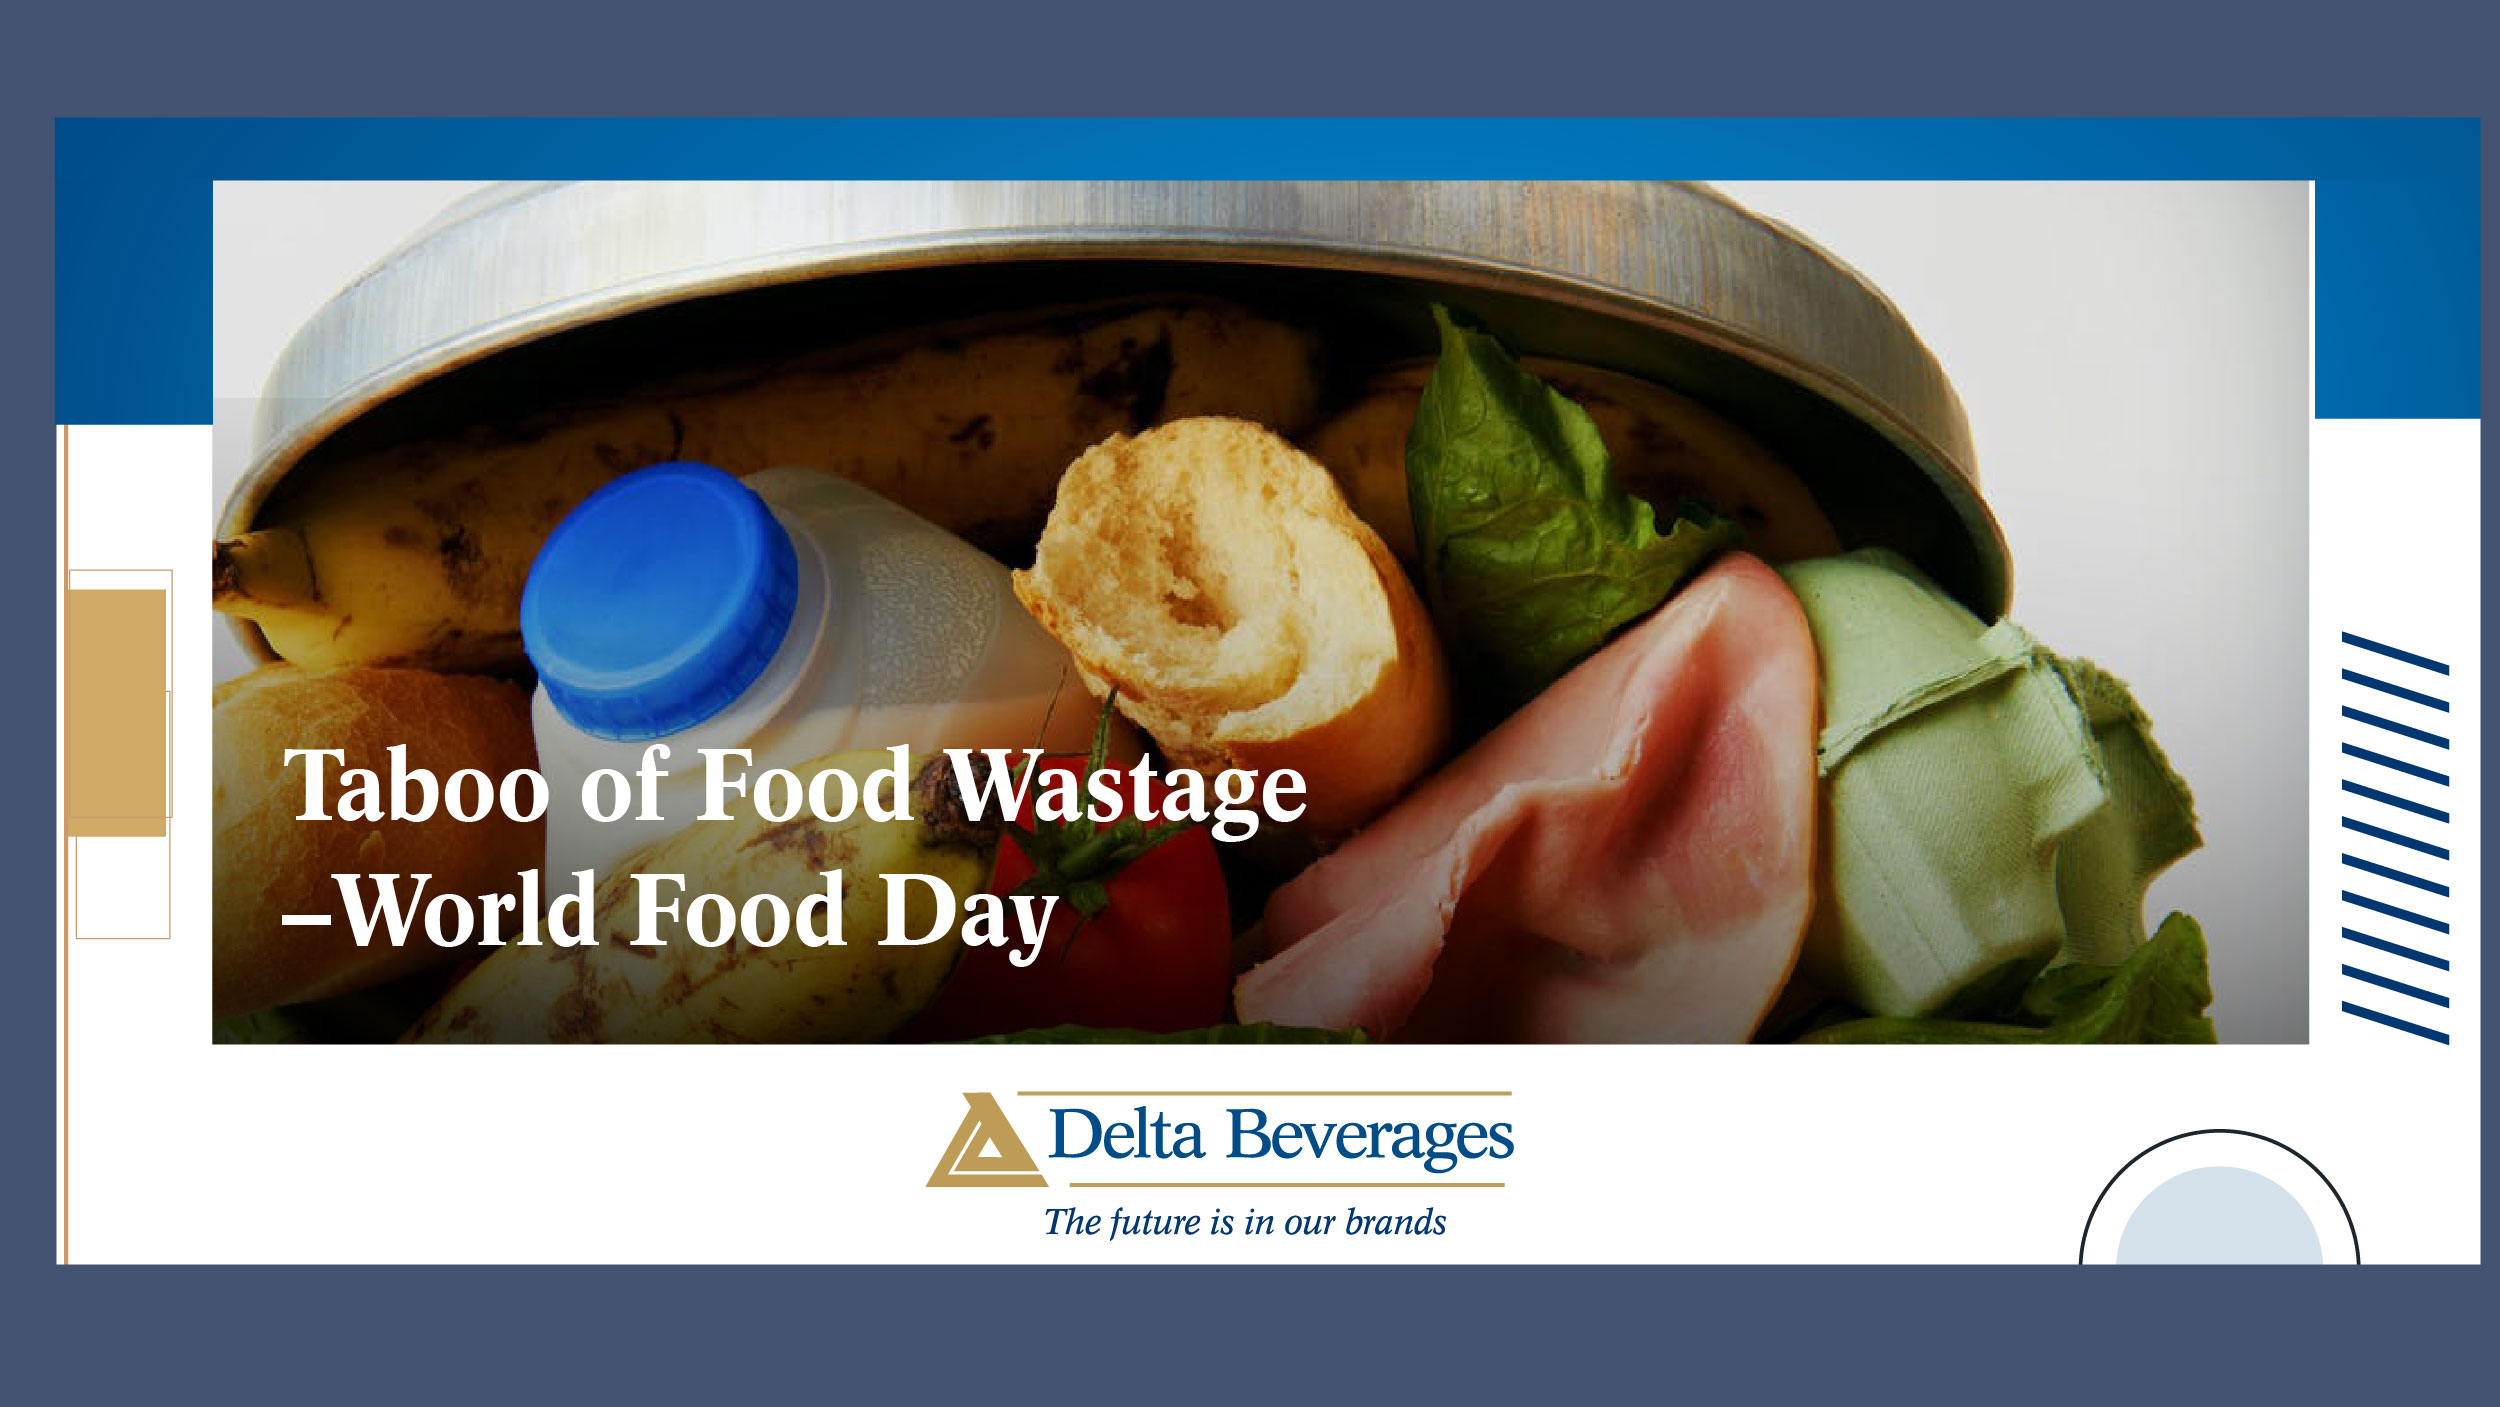 Taboo World of Food Wastage